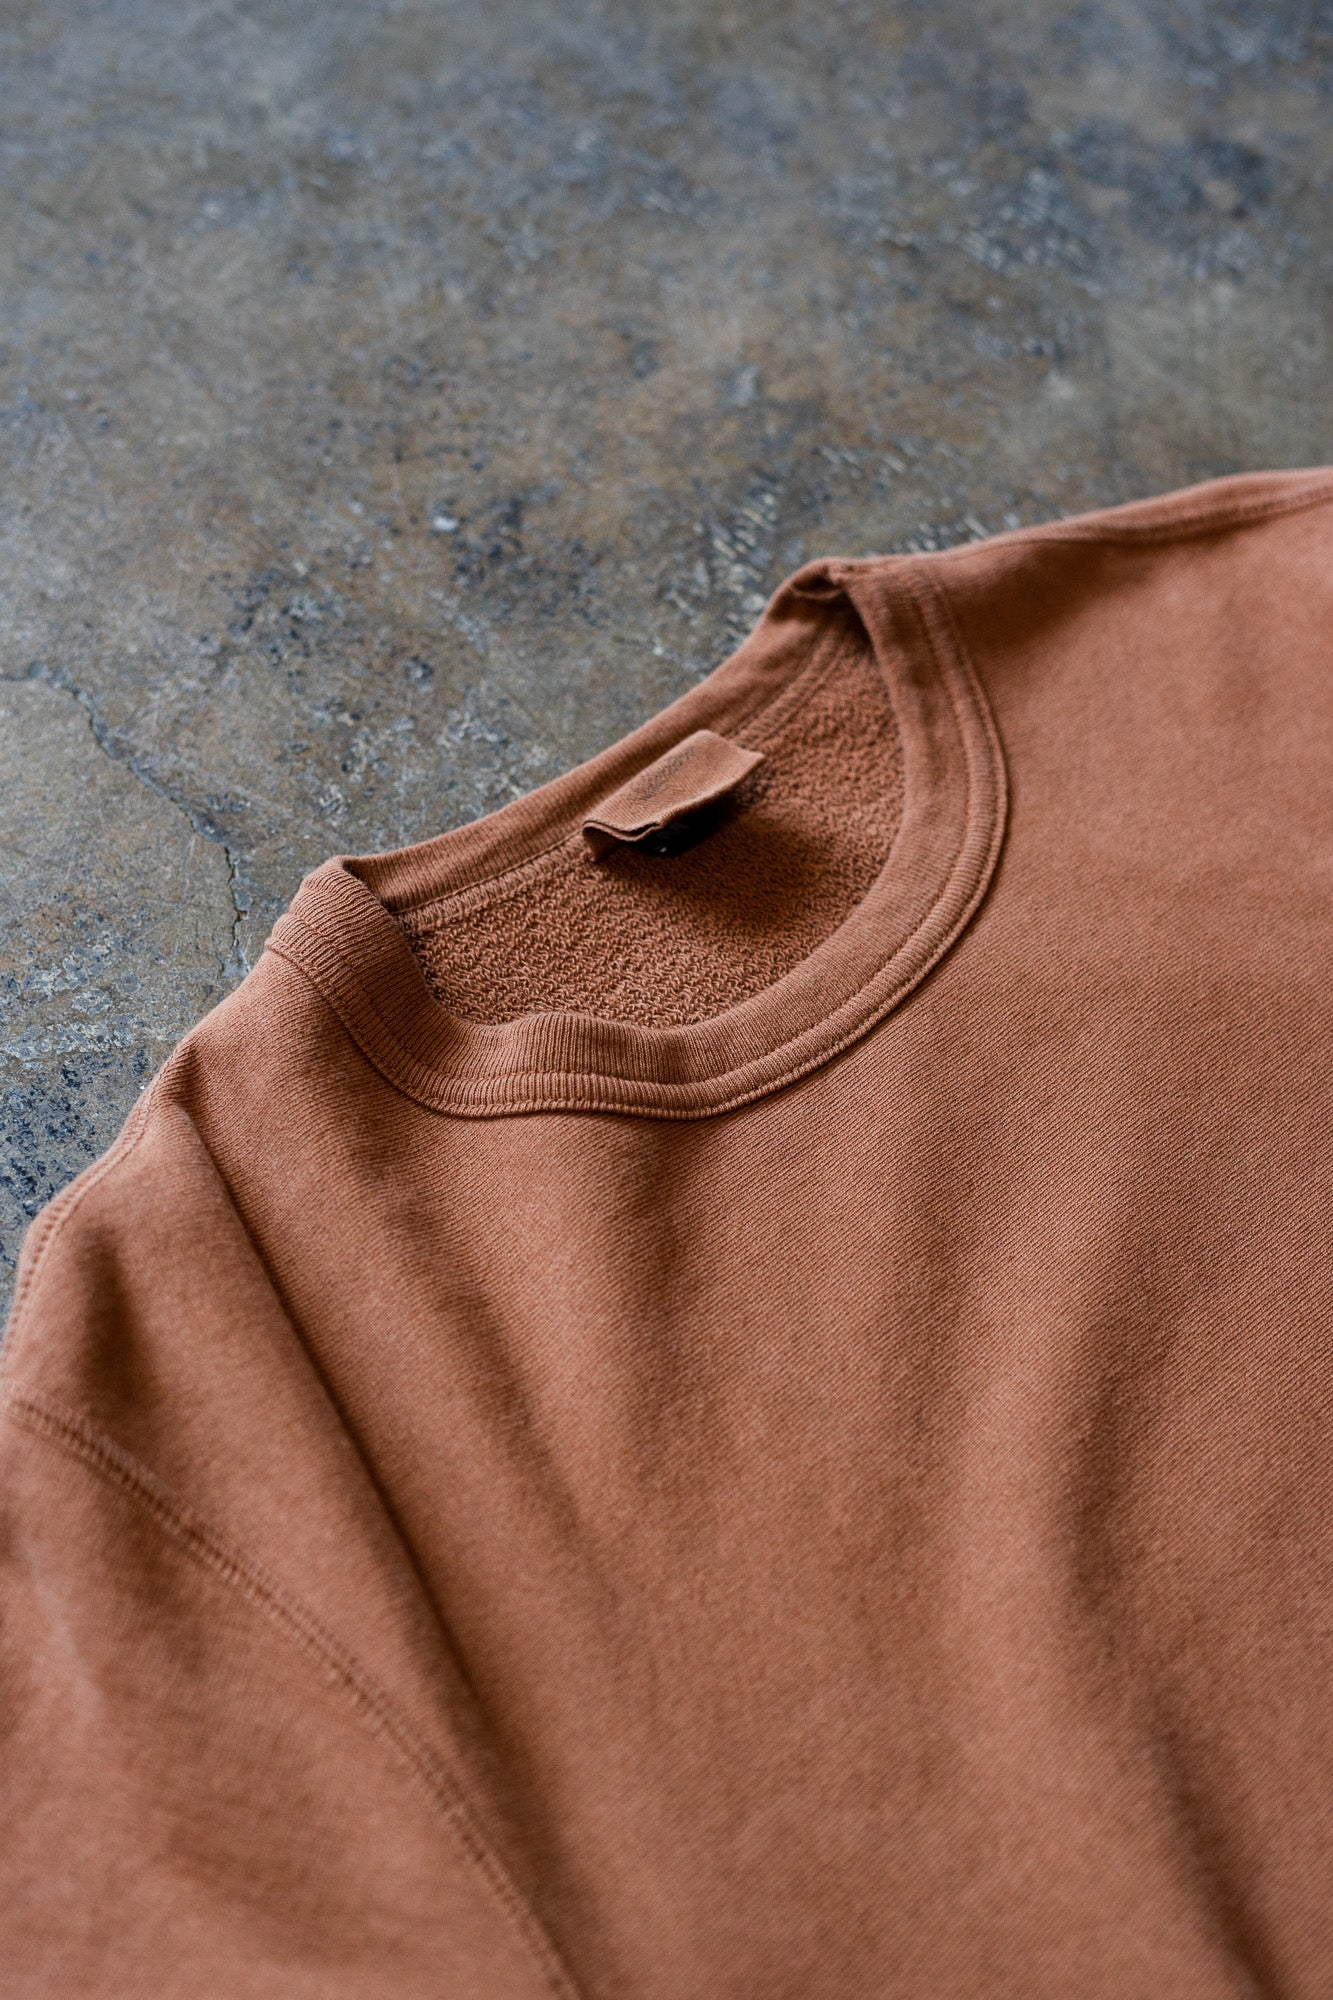 A close up view of the clove crewneck sweatshirt lying on the ground.